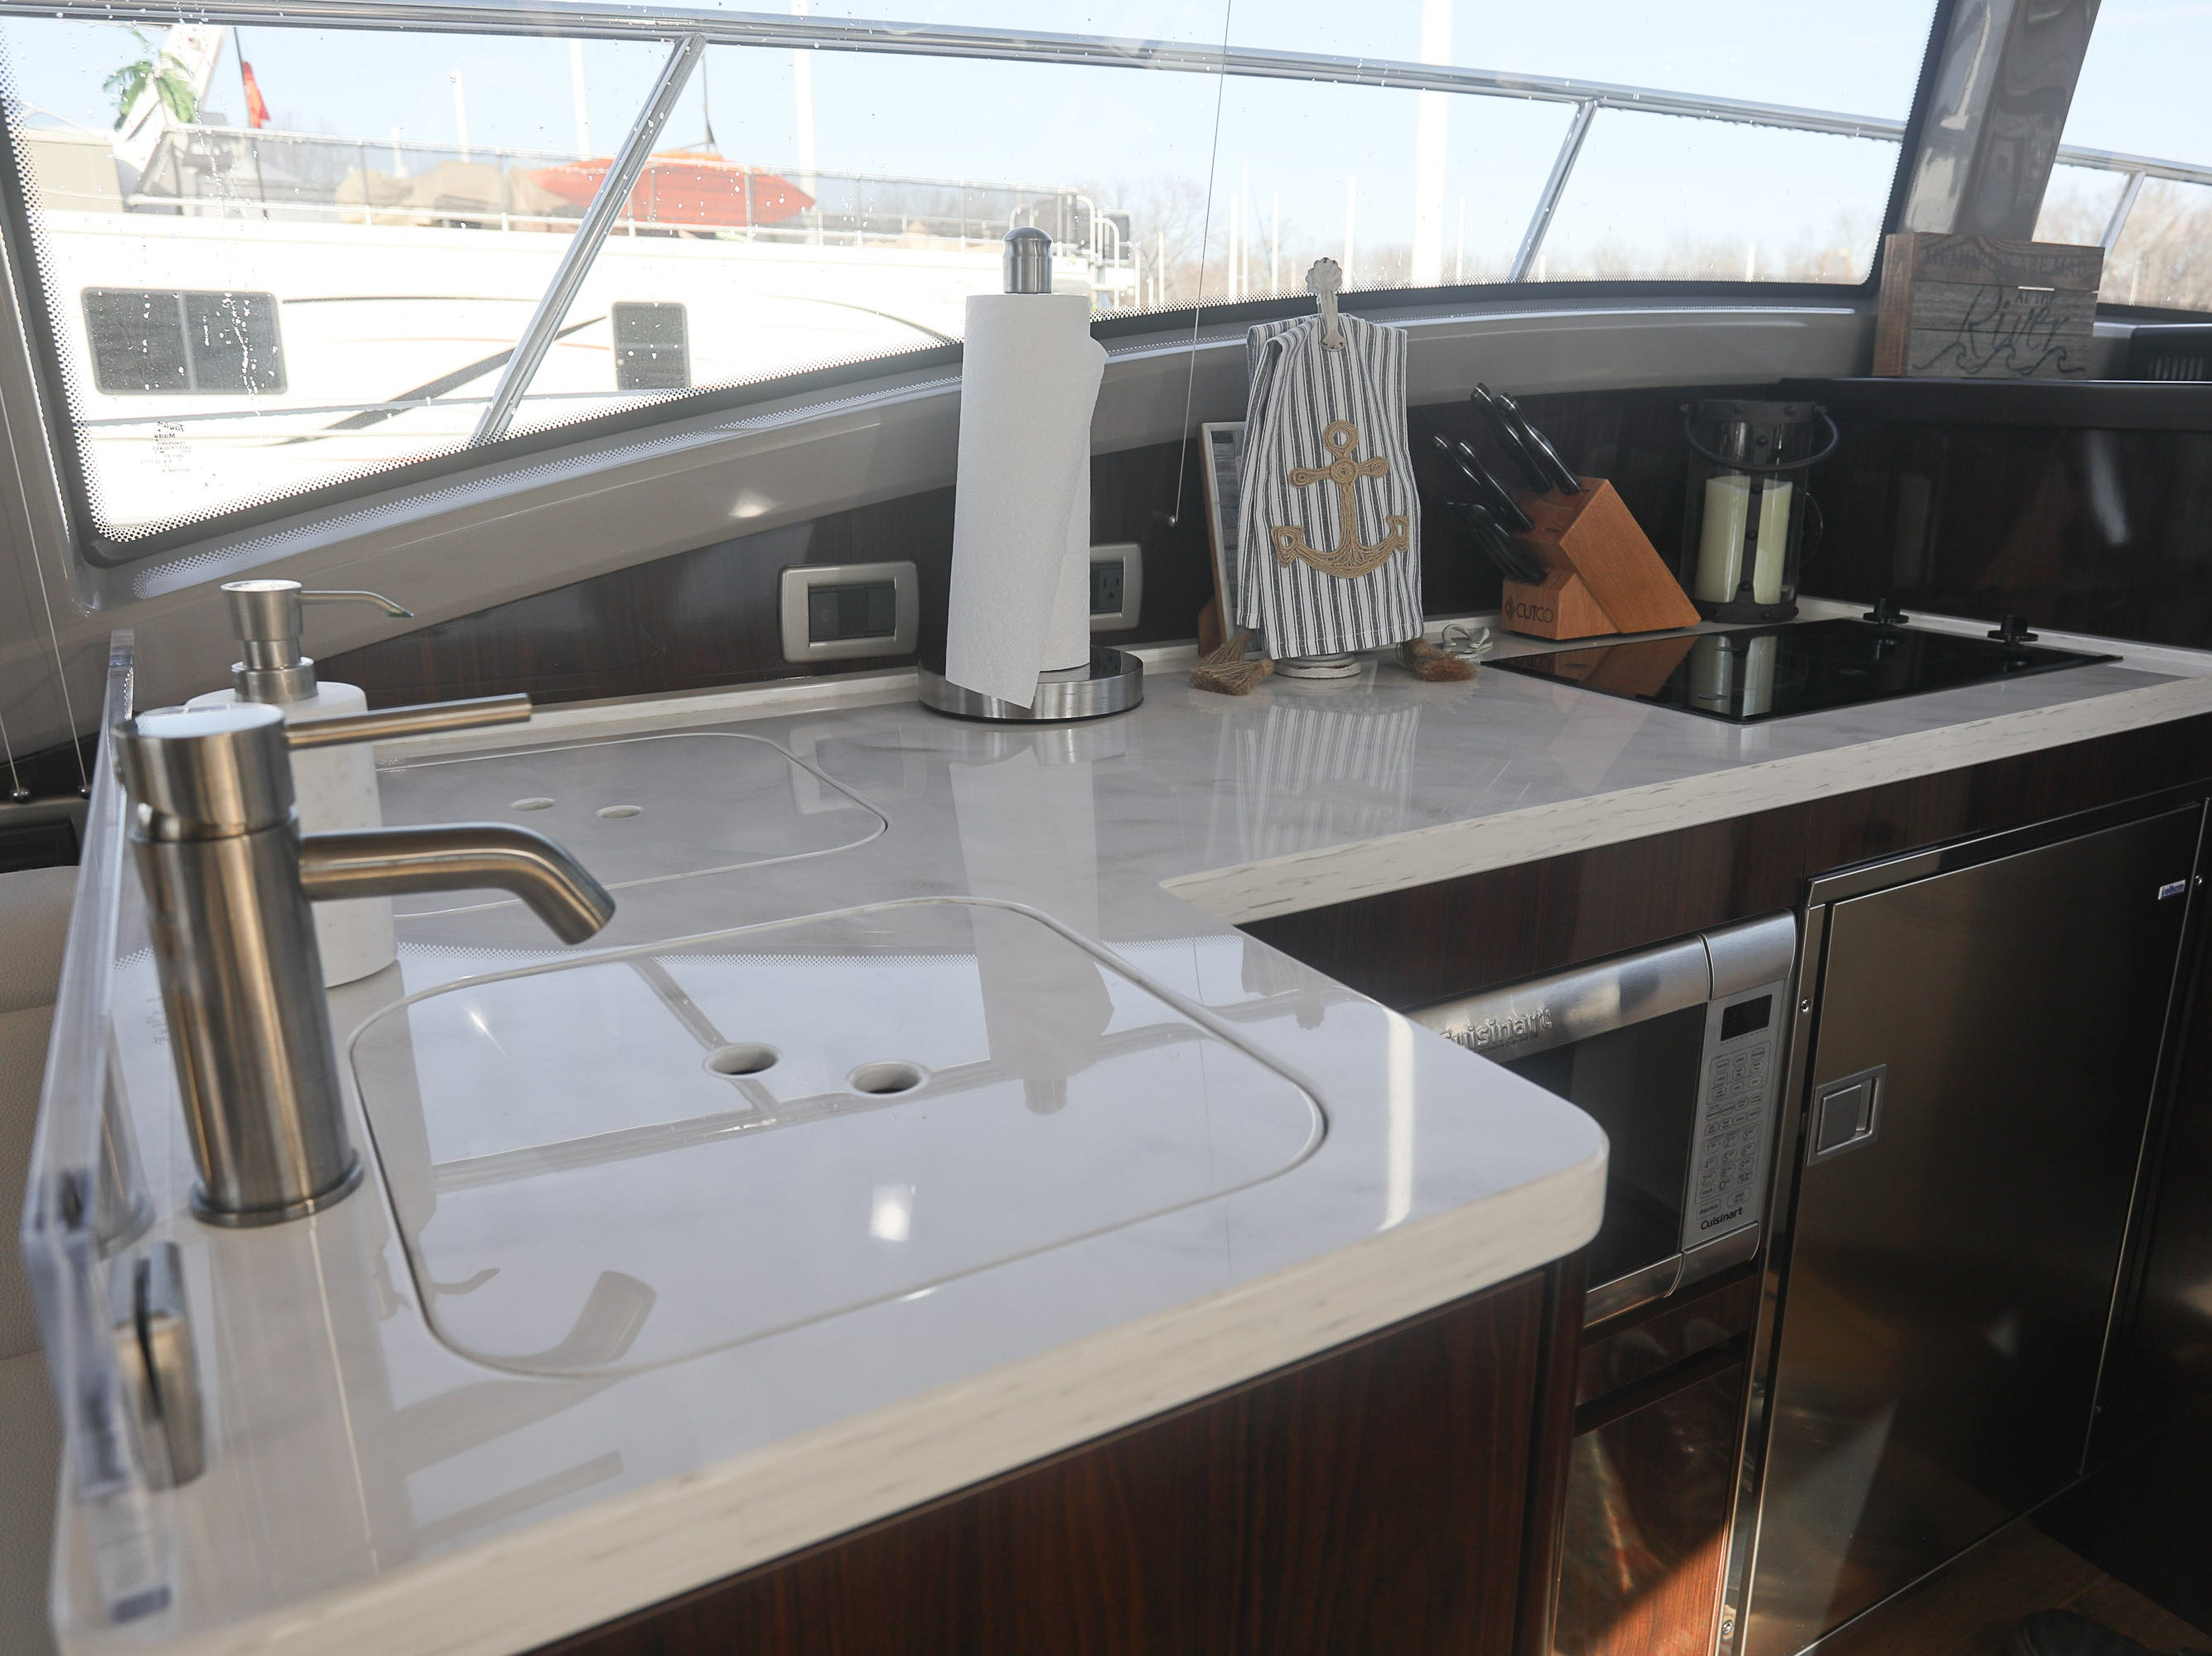 The galley of a 2017 Sea Ray 400 Sundancer at the Captain's Quarters marina in Louisville, KY. Dec. 17, 2018